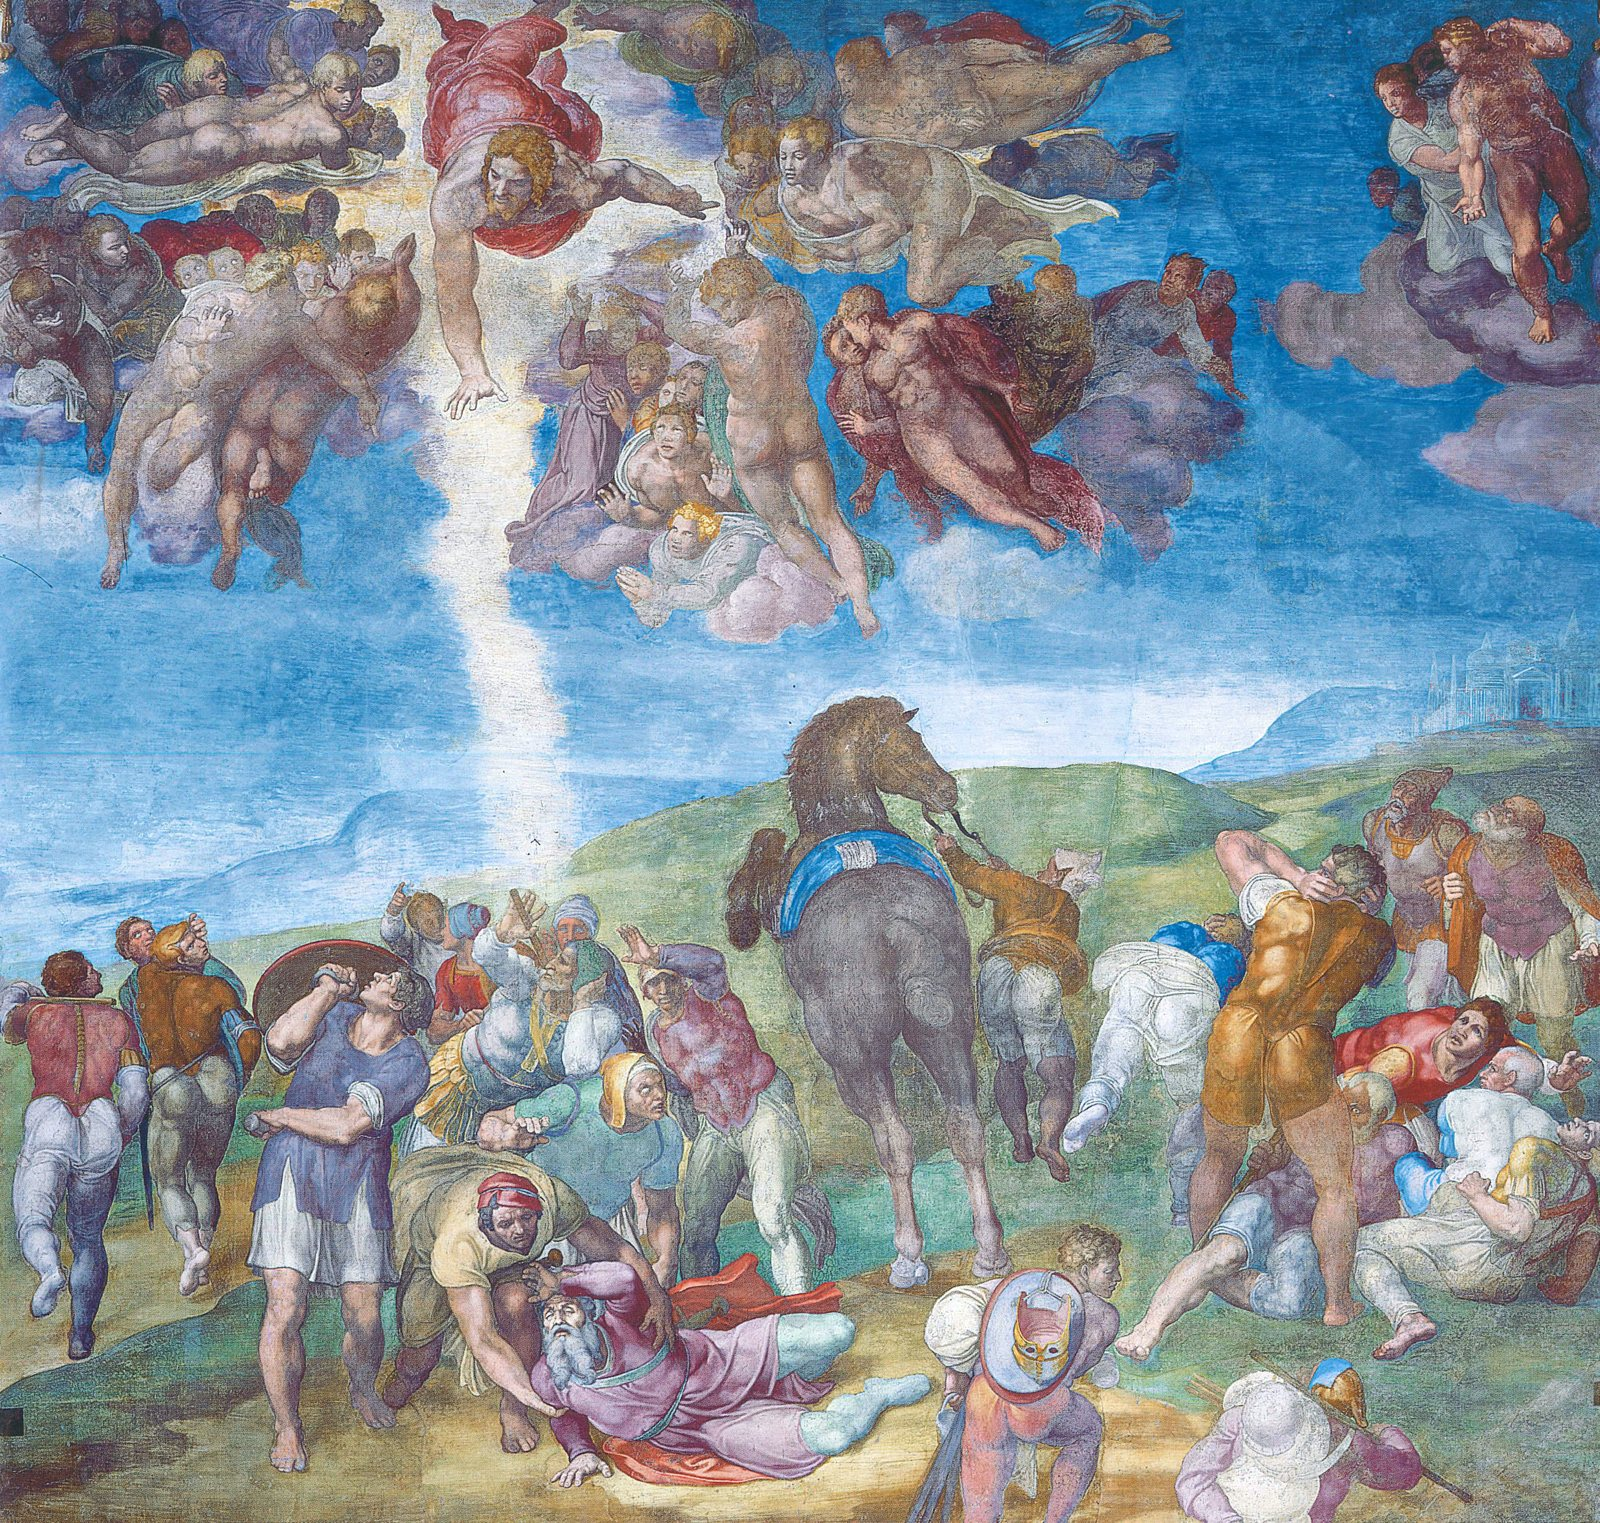 The Conversion of Paul by Michelangelo